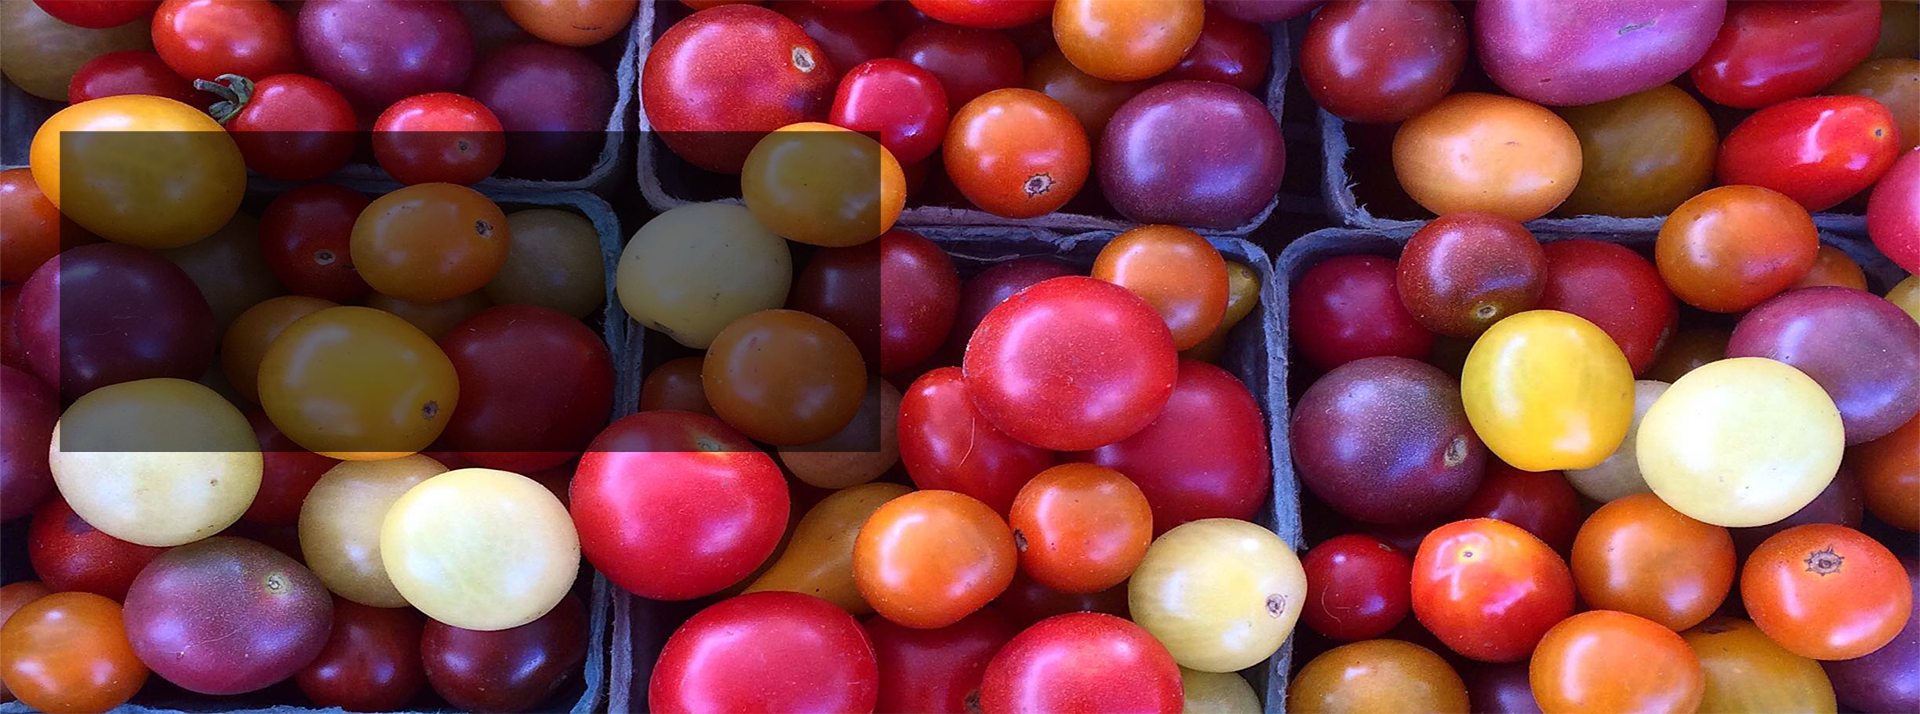 Read more about our CSA options, including the Veggie Box.